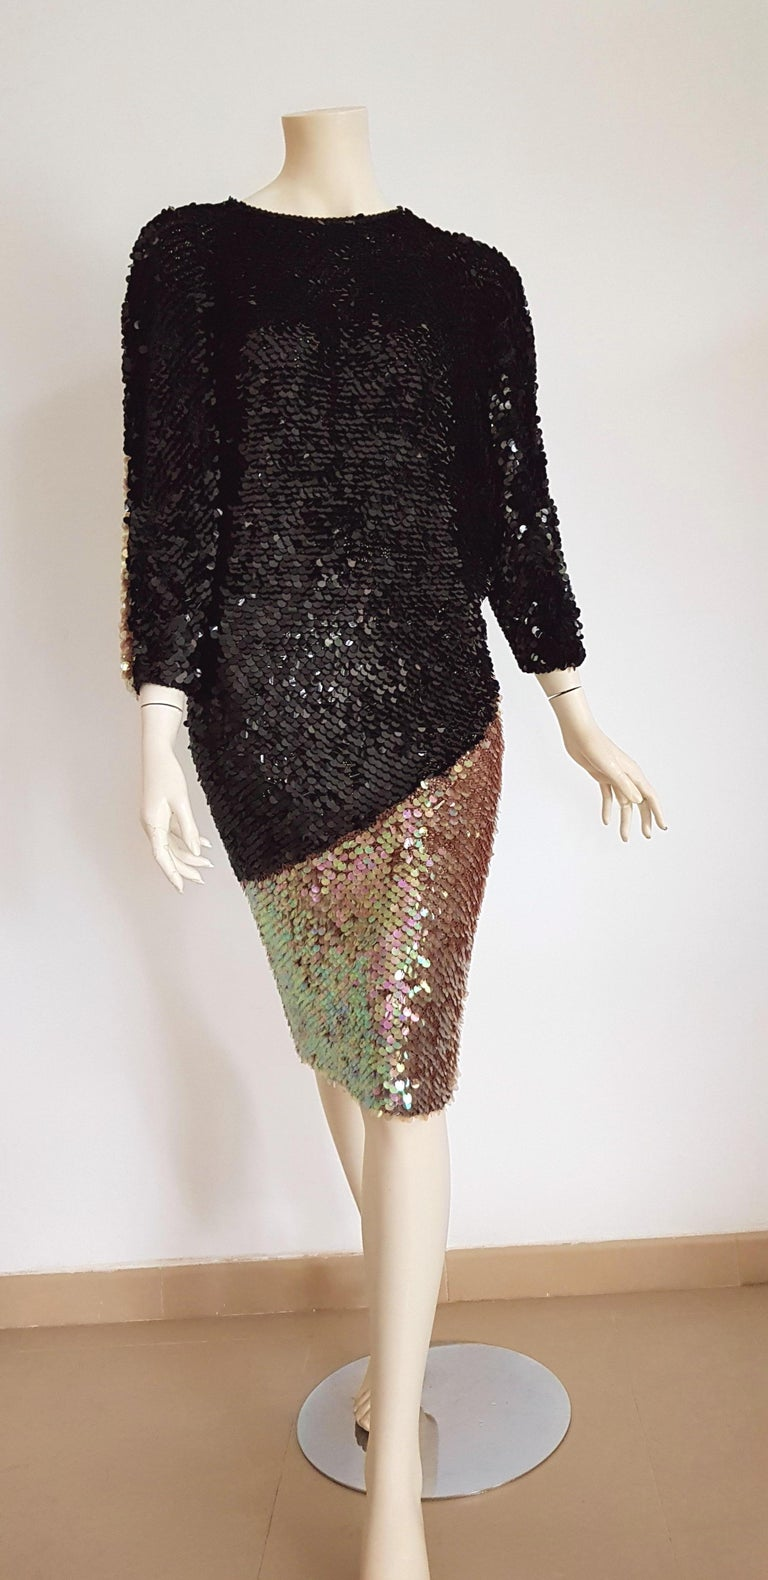 CHANEL Haute Couture covered with sequins on silk knit, black and pearl gown dress - Unworn, New.  SIZE: equivalent to about Small / Medium, please review approx measurements as follows in cm: lenght 101, chest elastic adjustable, bust elastic